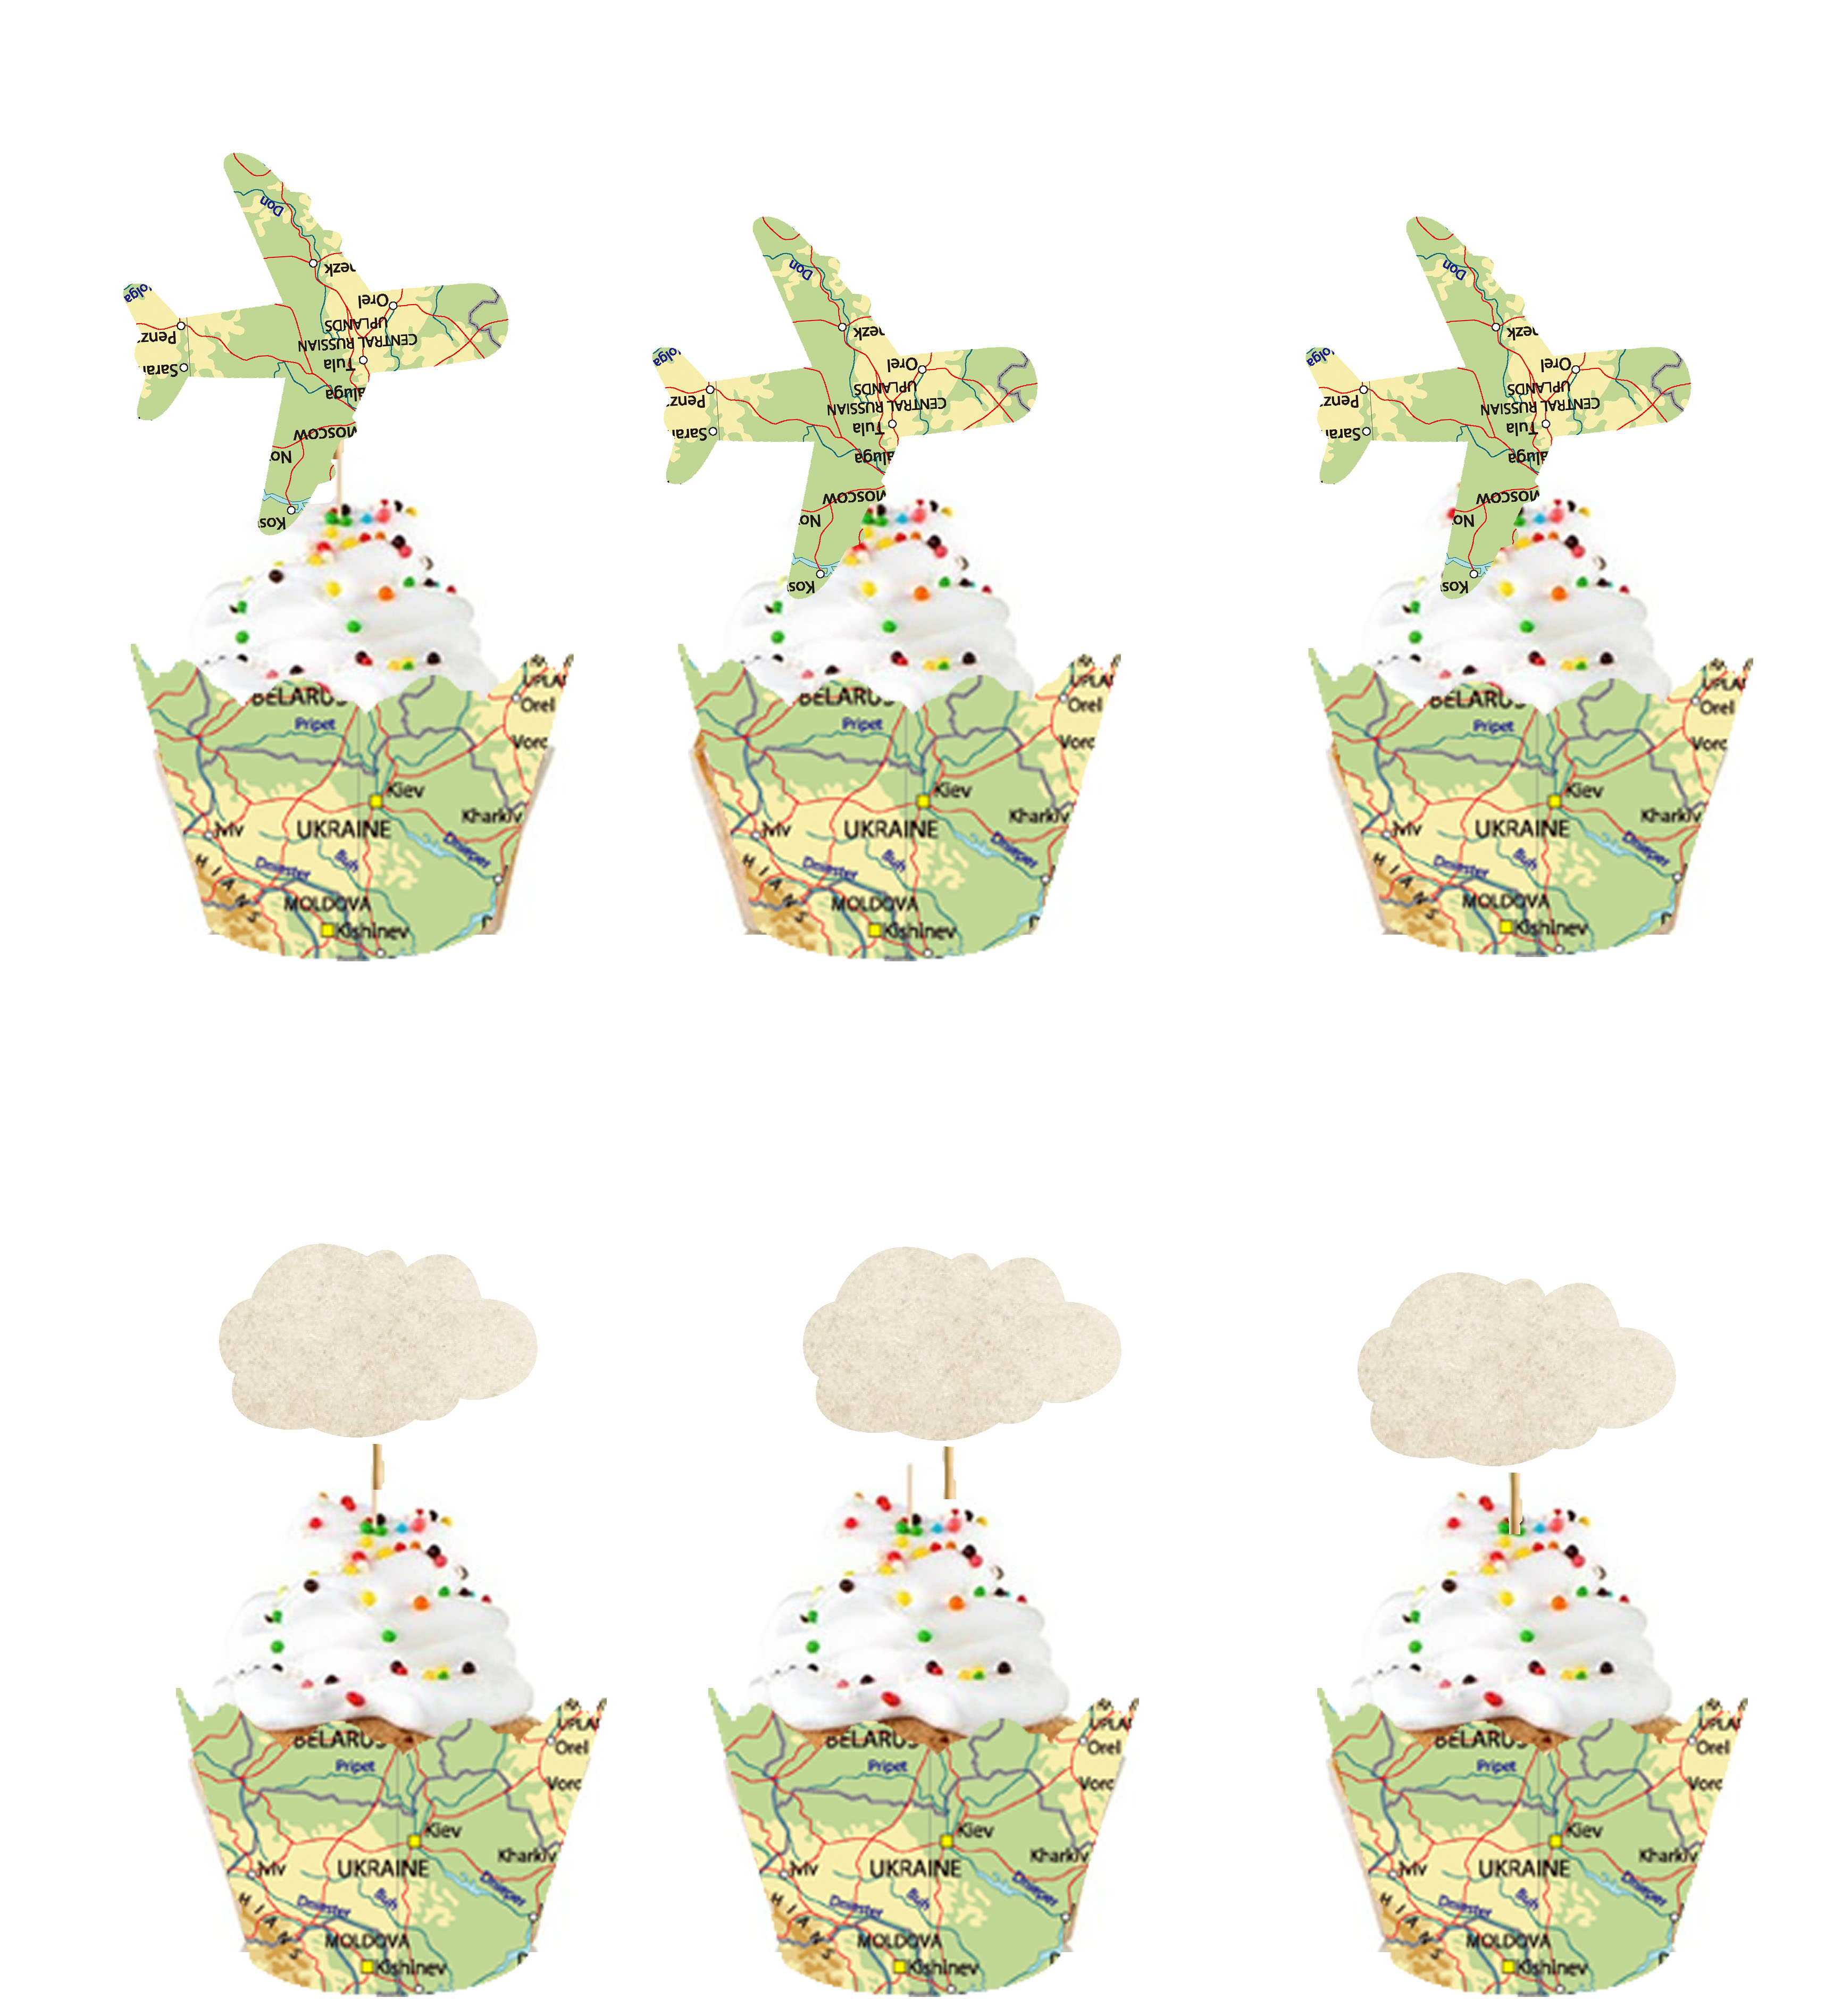 24 Vintage Map Airplane and Cloud Shaped CupCake Toppers Wrappers Party Decoration-Travel Themed Going Away Decoration Supplies image